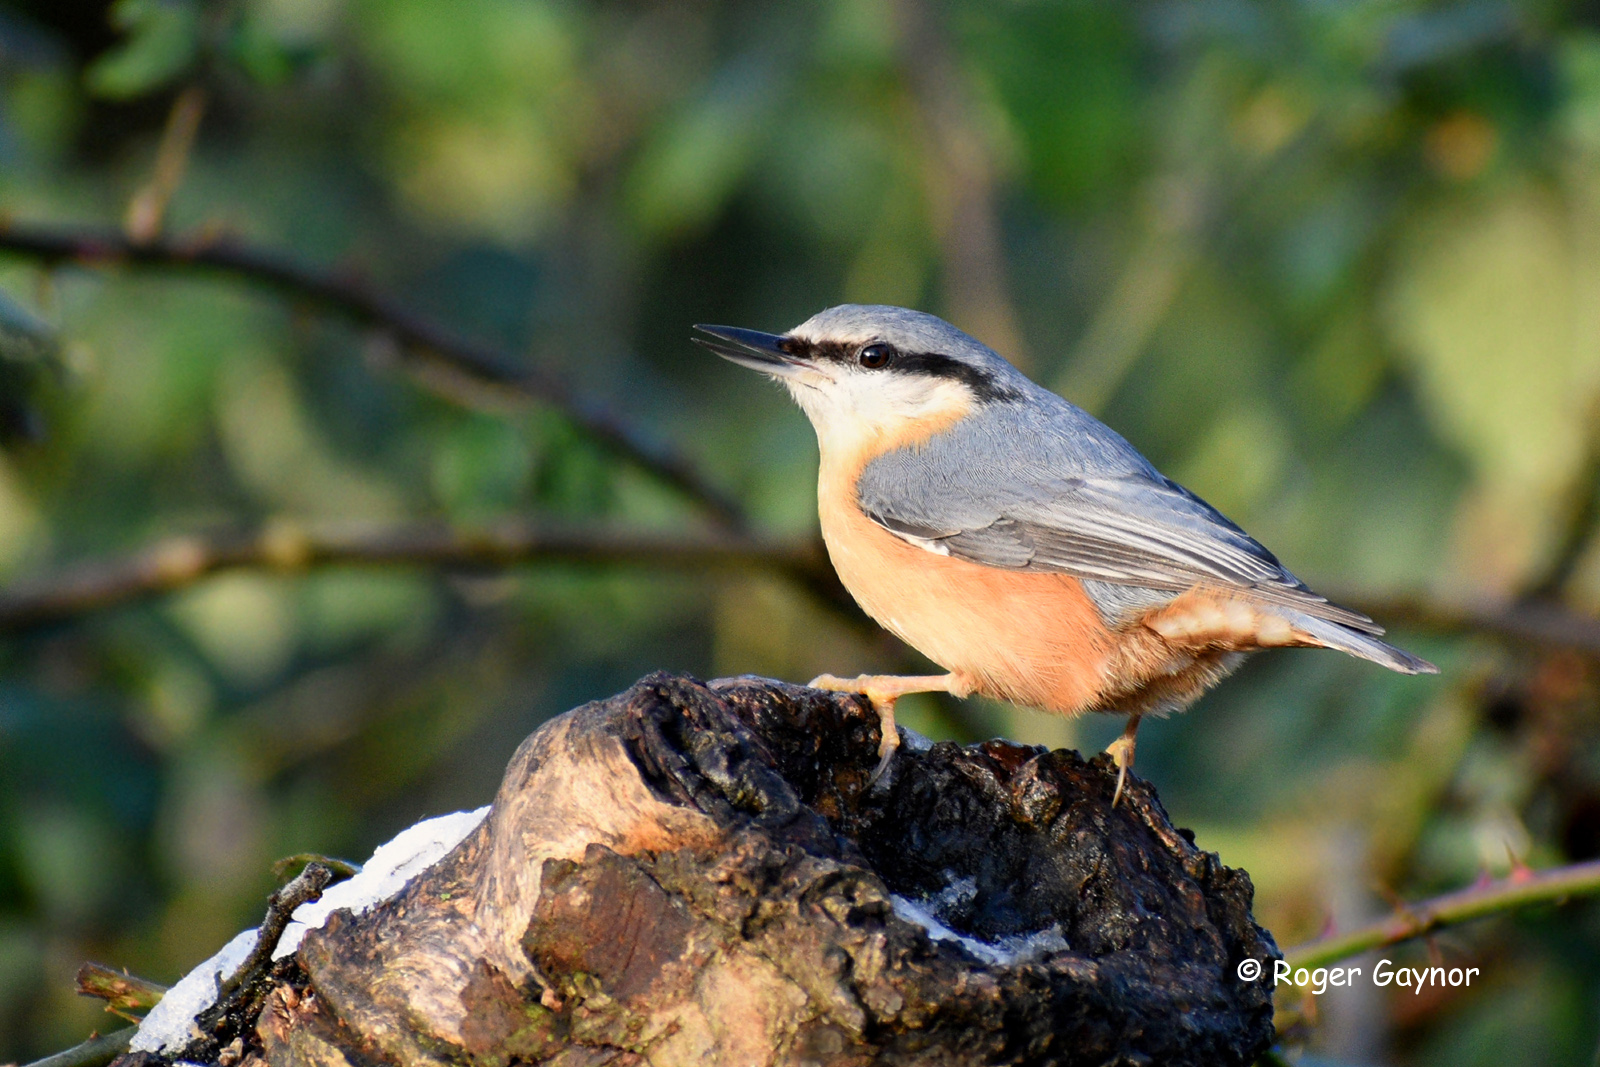 nuthatch at Nostell Priory